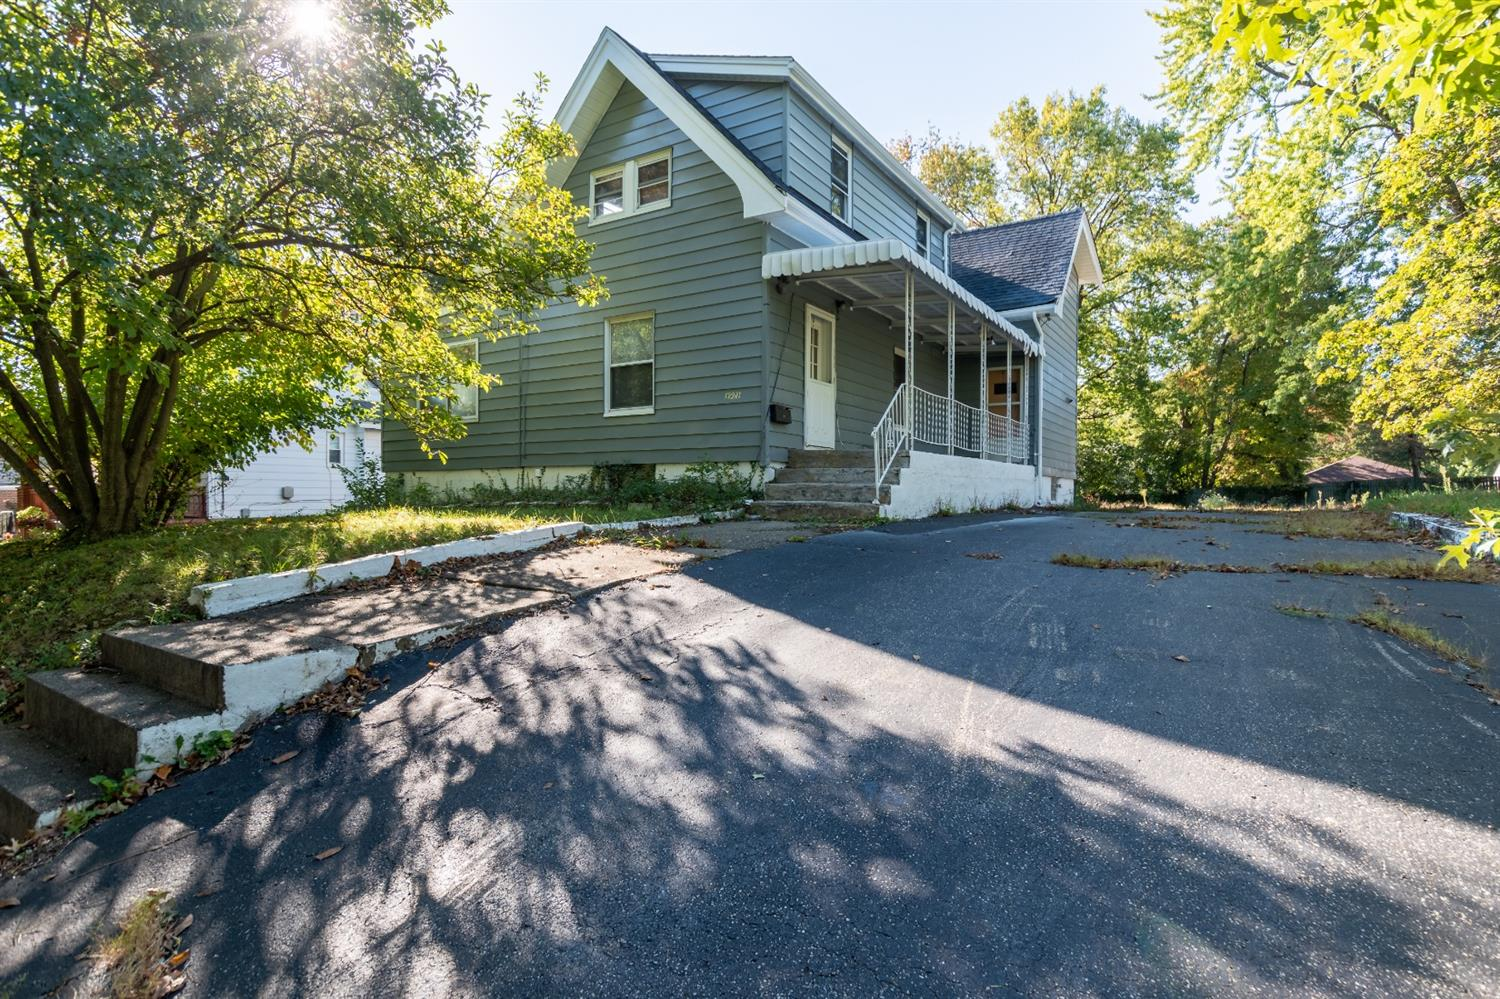 Photo 1 for 3921 Zinsle Ave Kennedy Hts., OH 45213